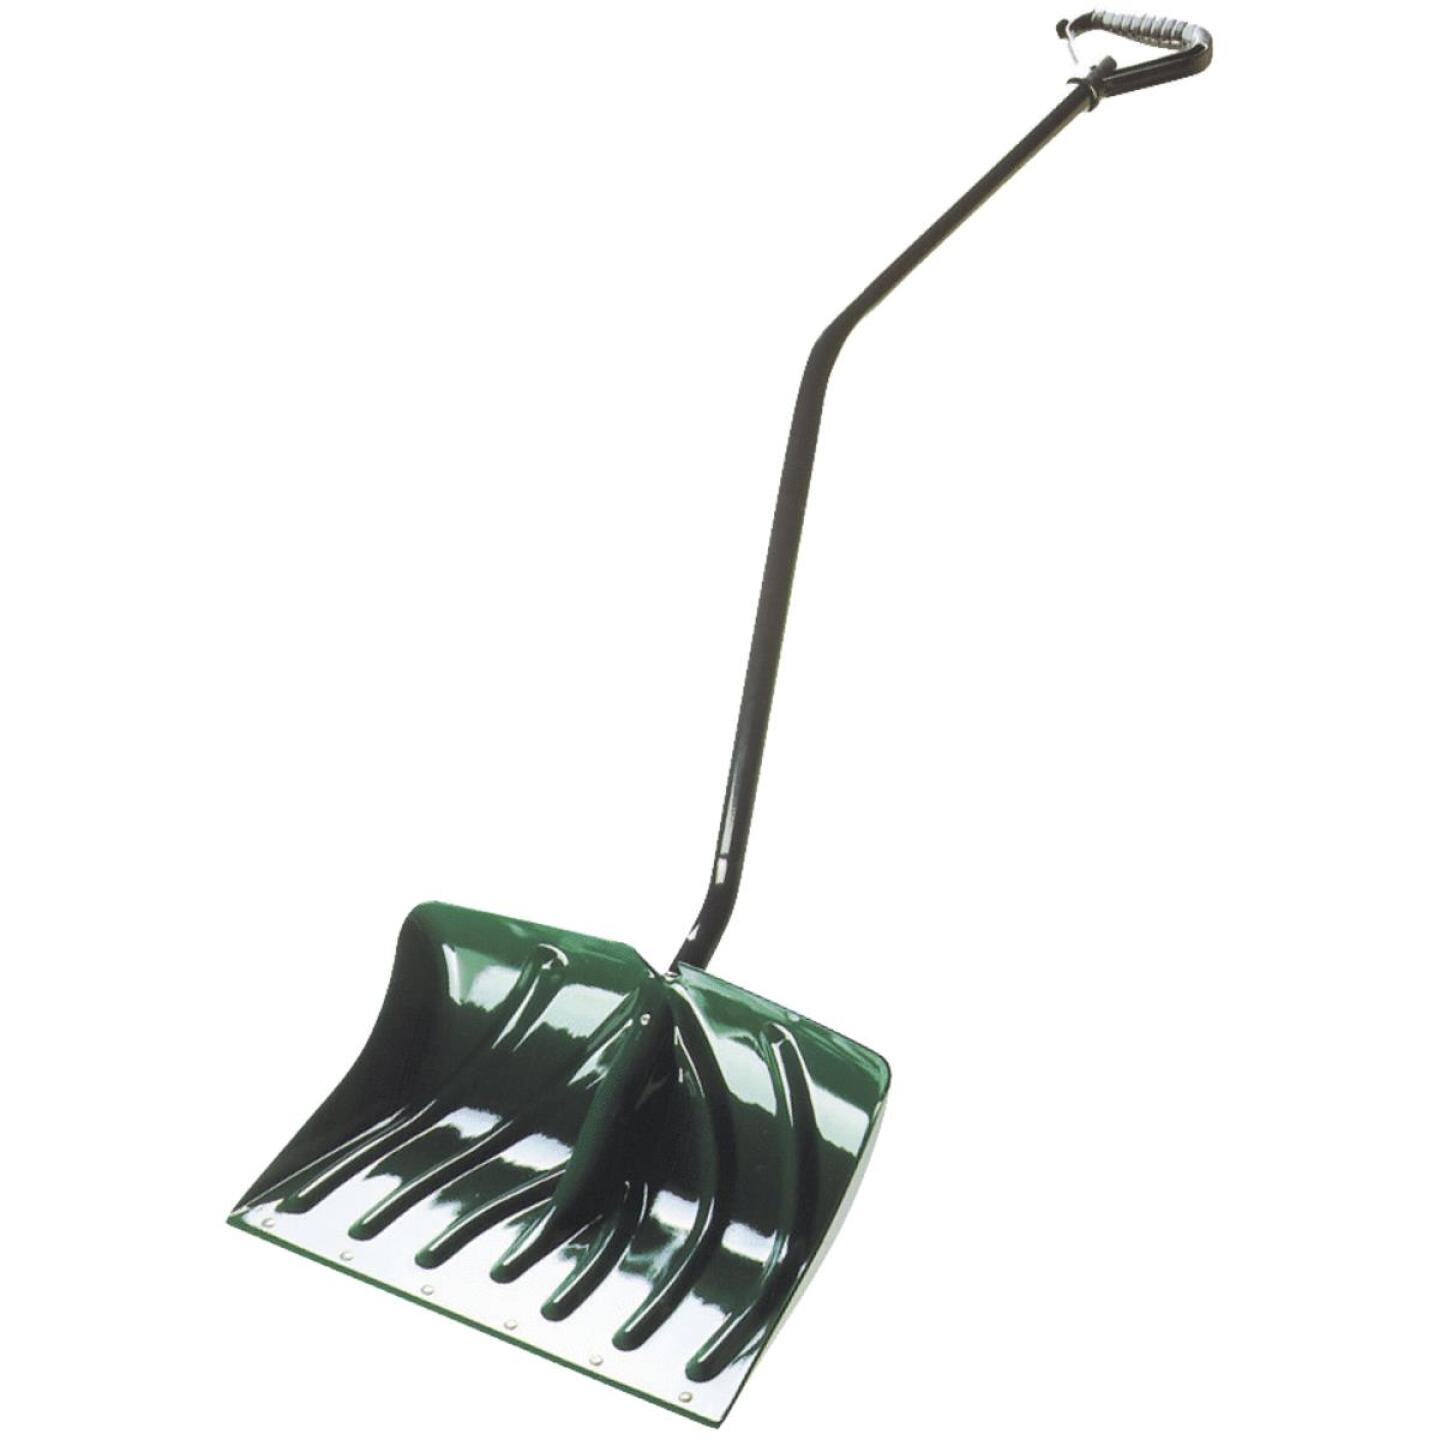 Suncast 18 In. Poly Snow Shovel & Pusher with 40.5 In. Steel Handle Image 2